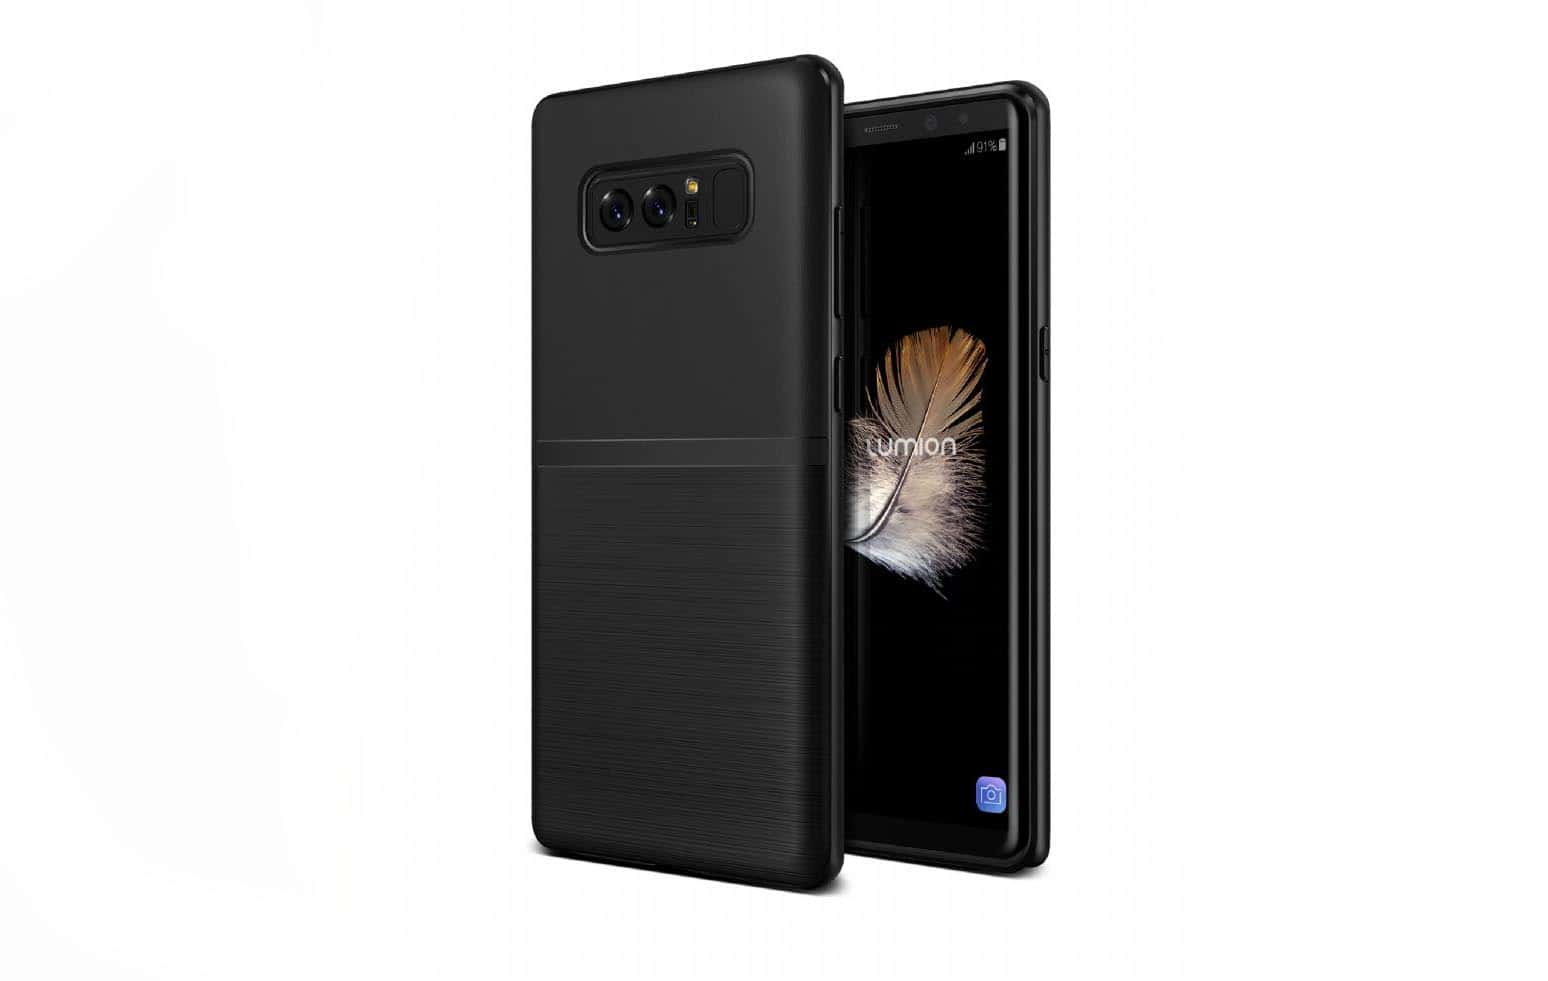 samsung note 8 case. new samsung galaxy note 8 cases appear with phone\u0027s renders | androidheadlines.com case c